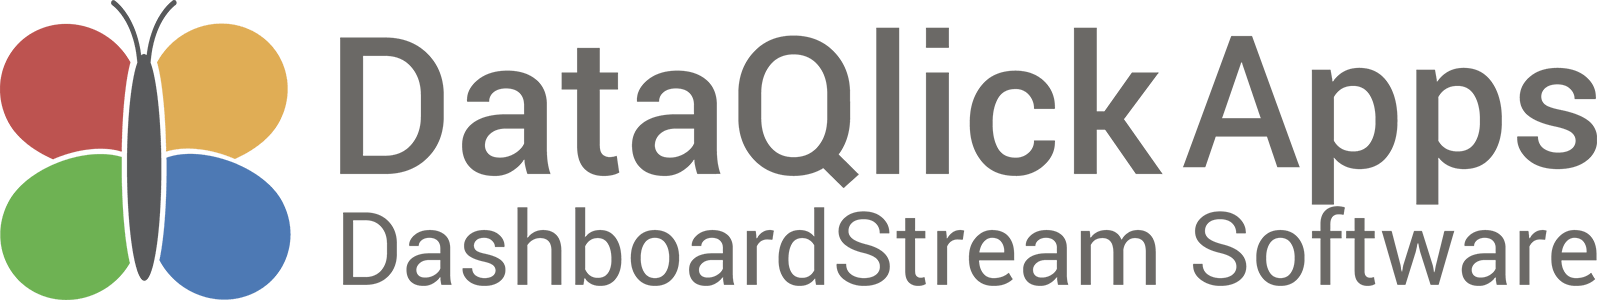 DataQlick Apps- Dashboardstream Software